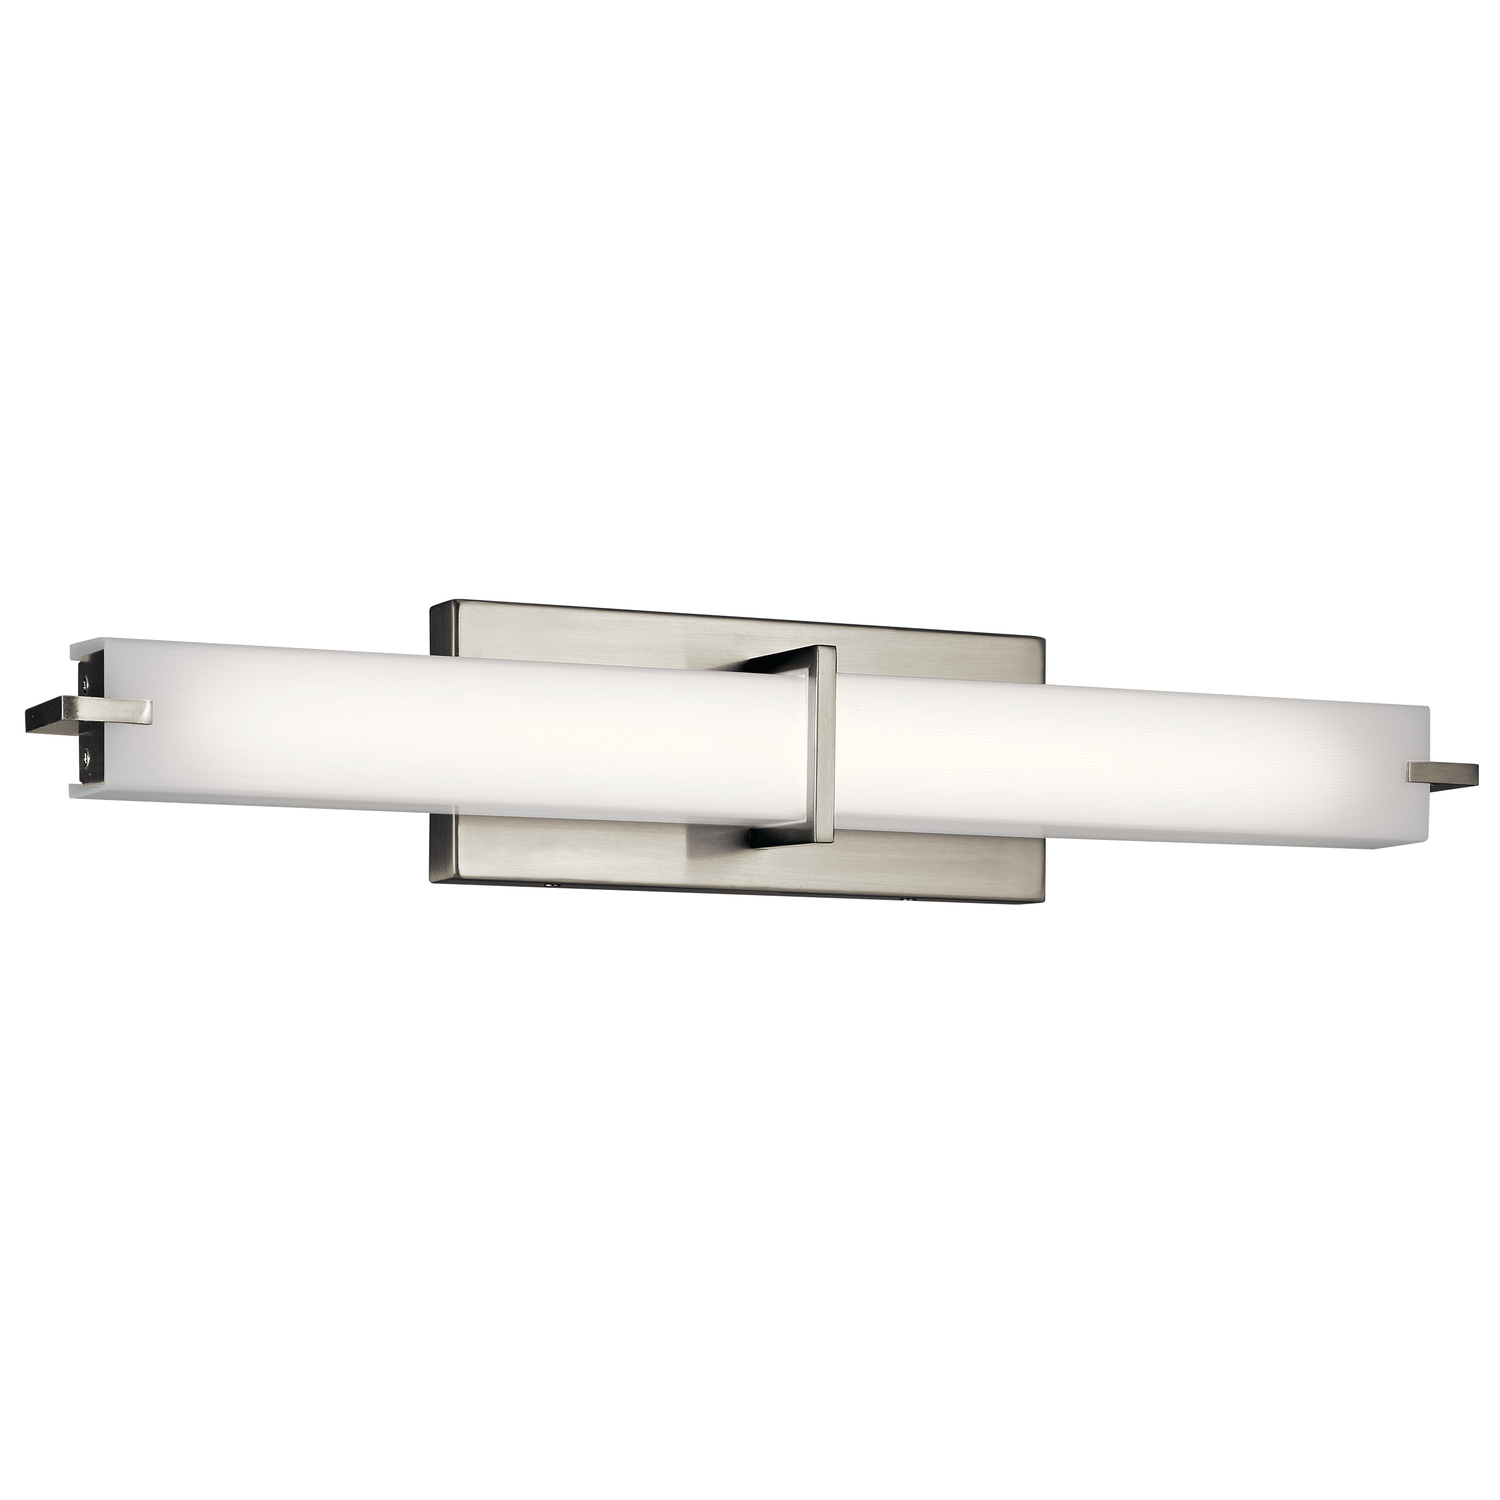 Flat Linear Bathroom Vanity Light By Kichler | 11146NILED